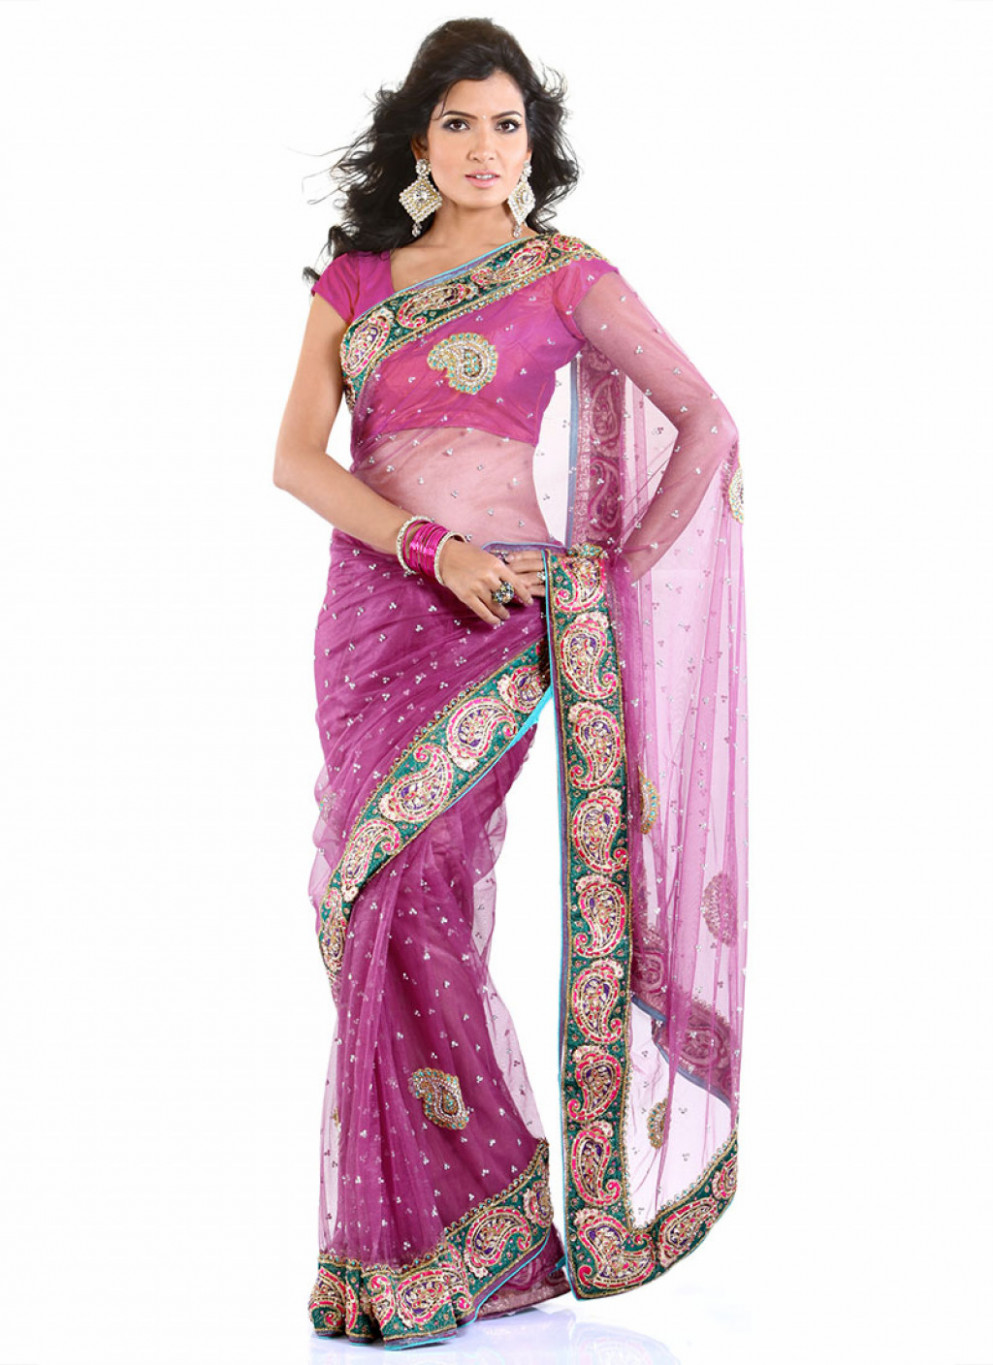 Bollywood Inspired Fashions by Cbazaar: Sarees, Lehengas